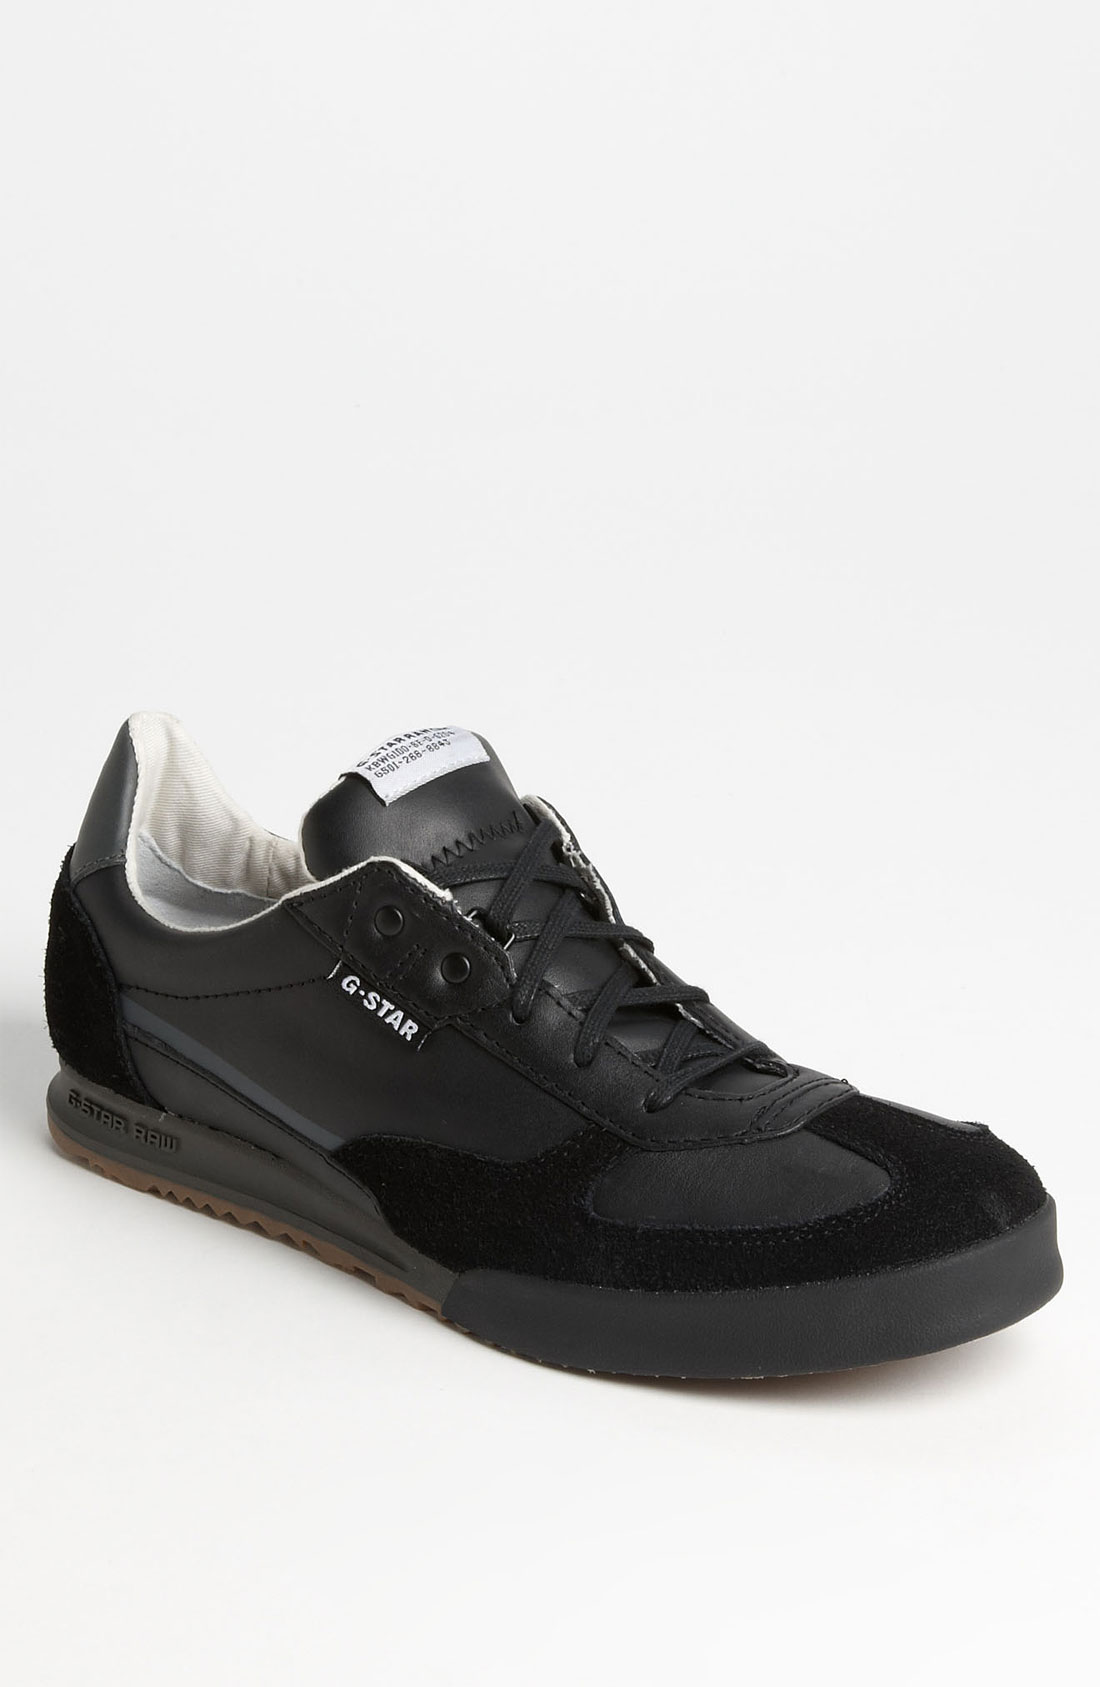 g star raw volt retracer sneaker in black for men lyst. Black Bedroom Furniture Sets. Home Design Ideas